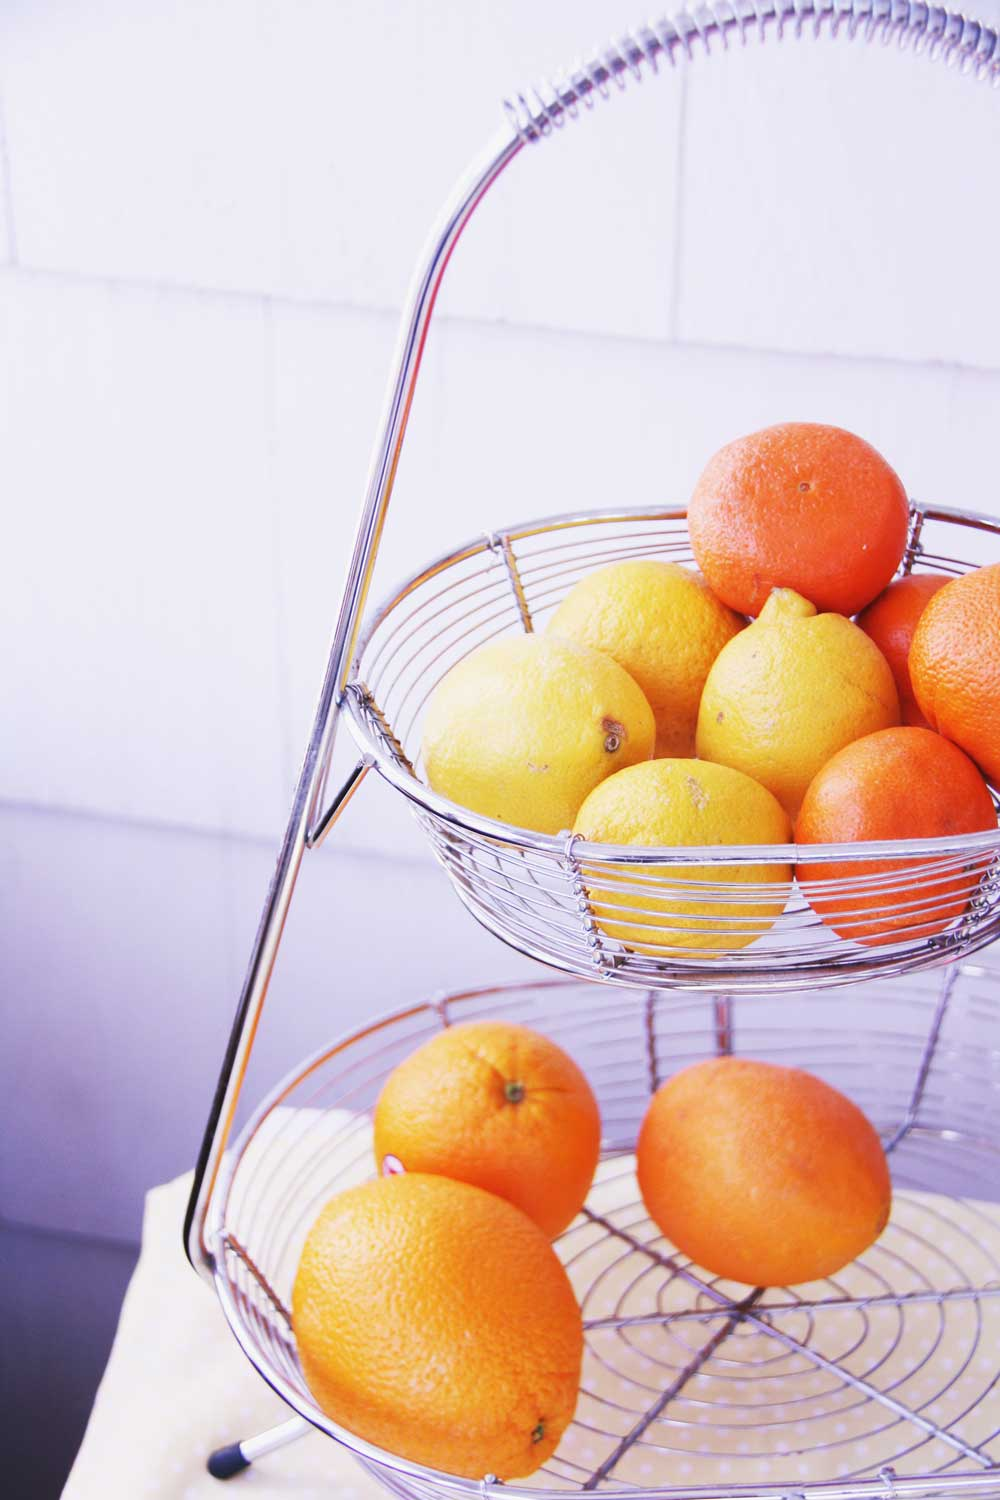 Oranges and lemons in basket | redleafstyle.com